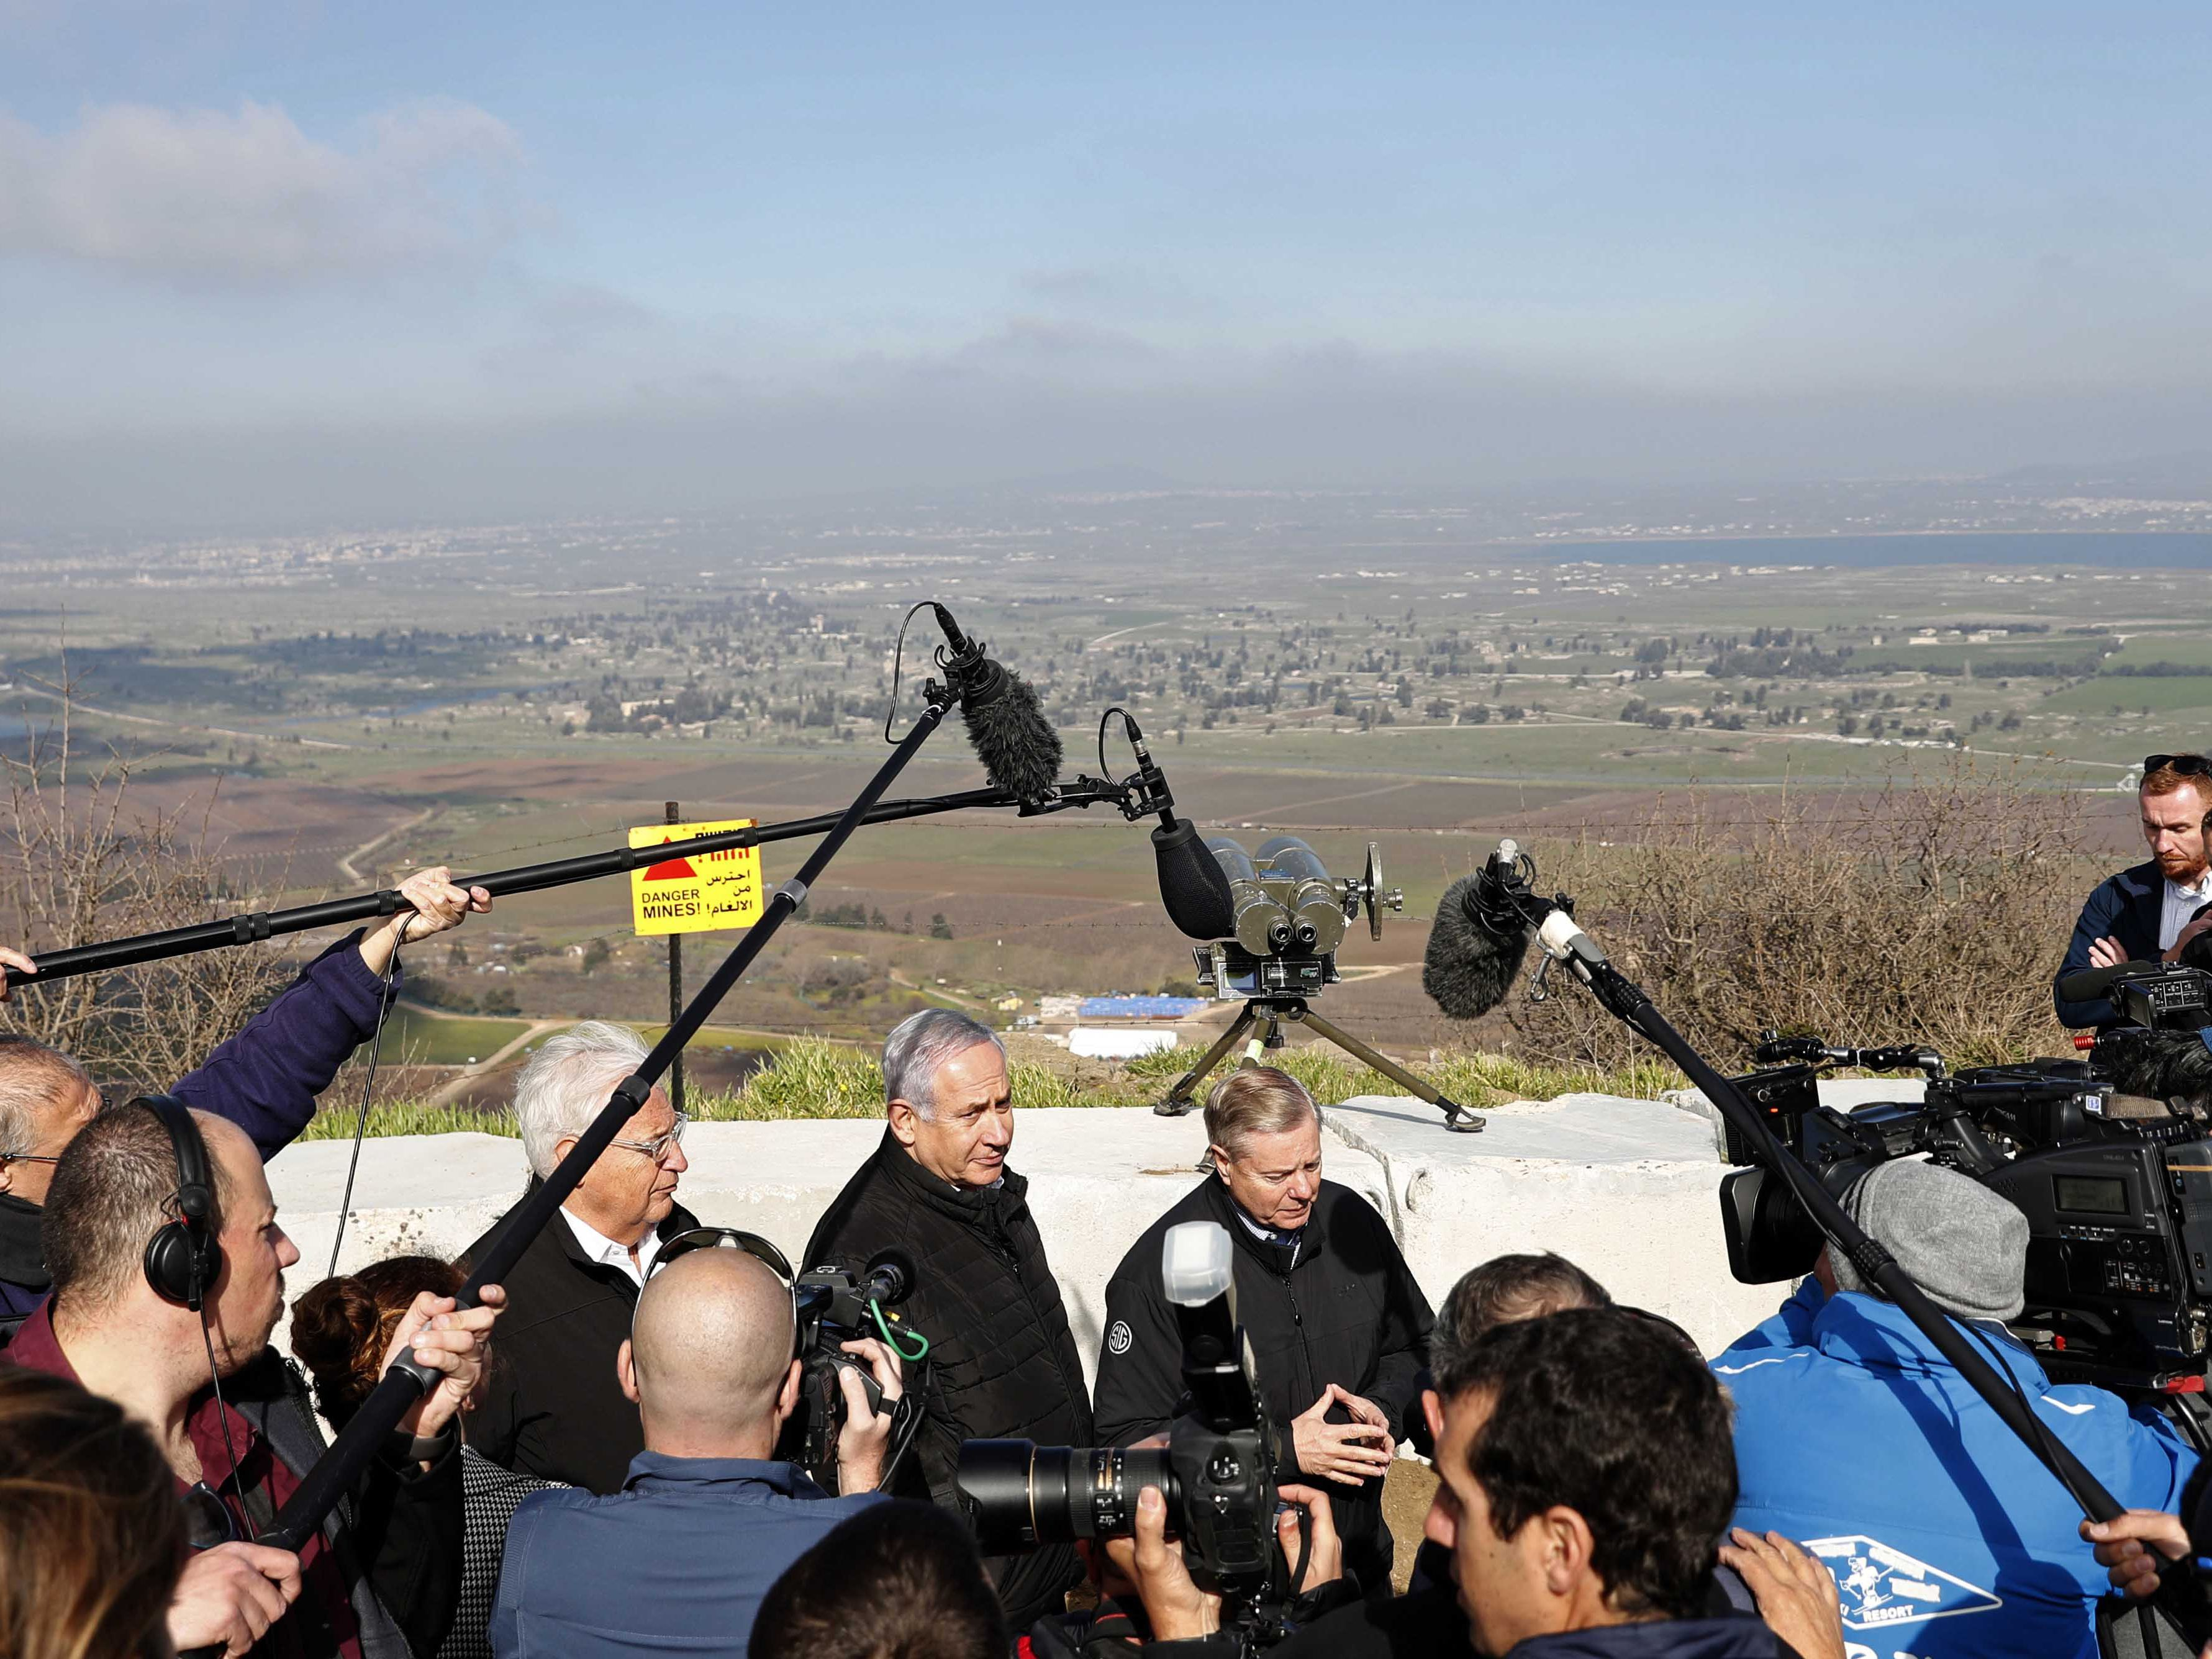 Trump says US recognizes Israel's sovereignty of Golan Heights